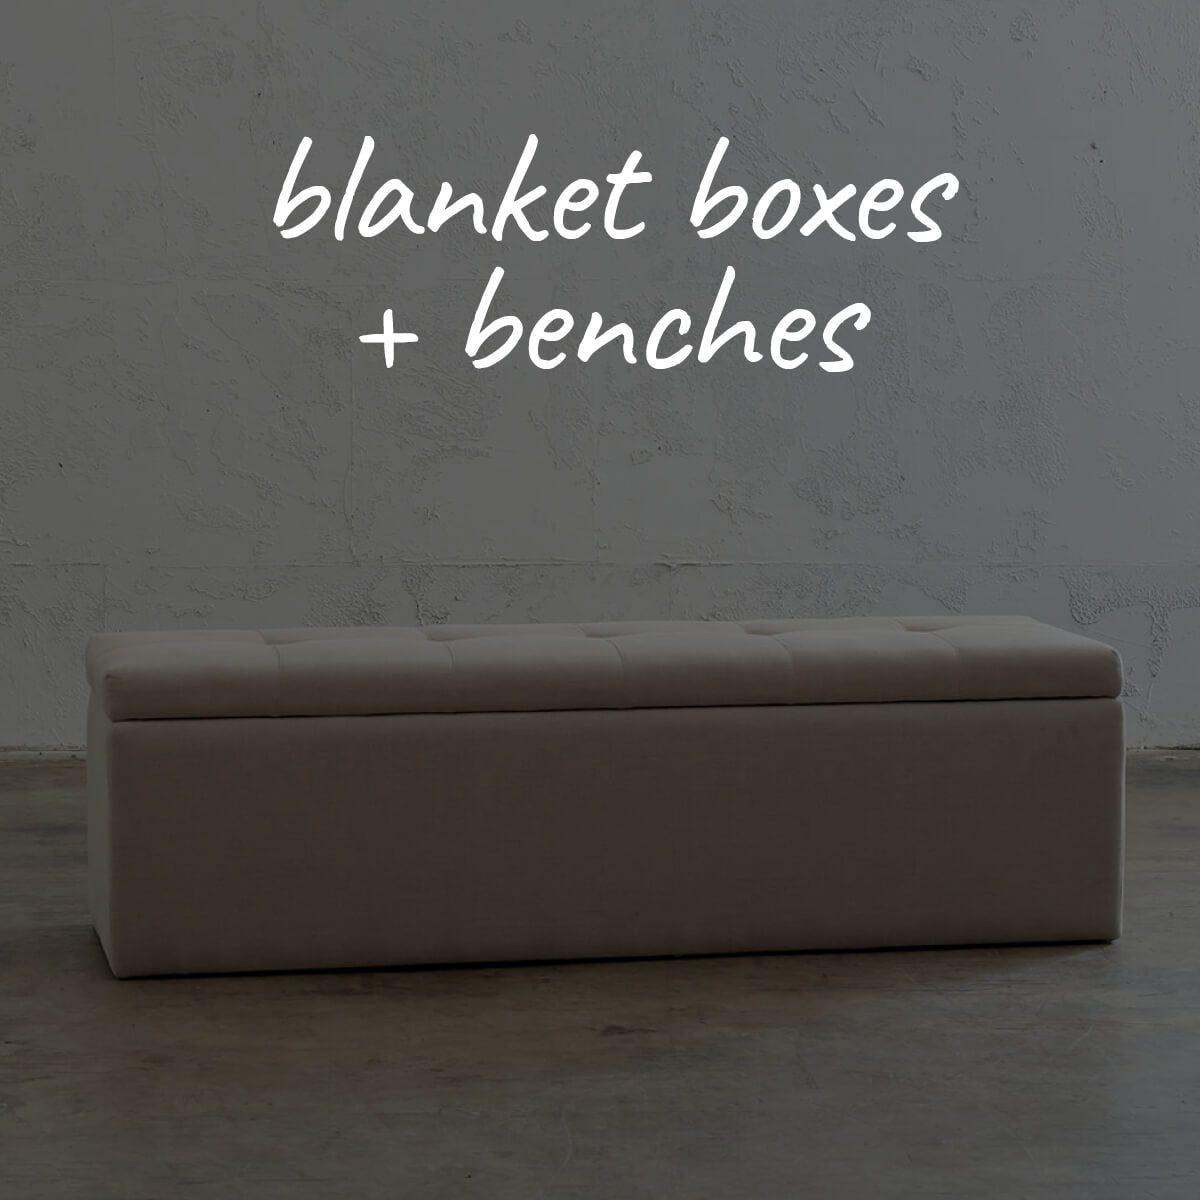 END OF BED  |  BENCHES + BLANKET BOXES